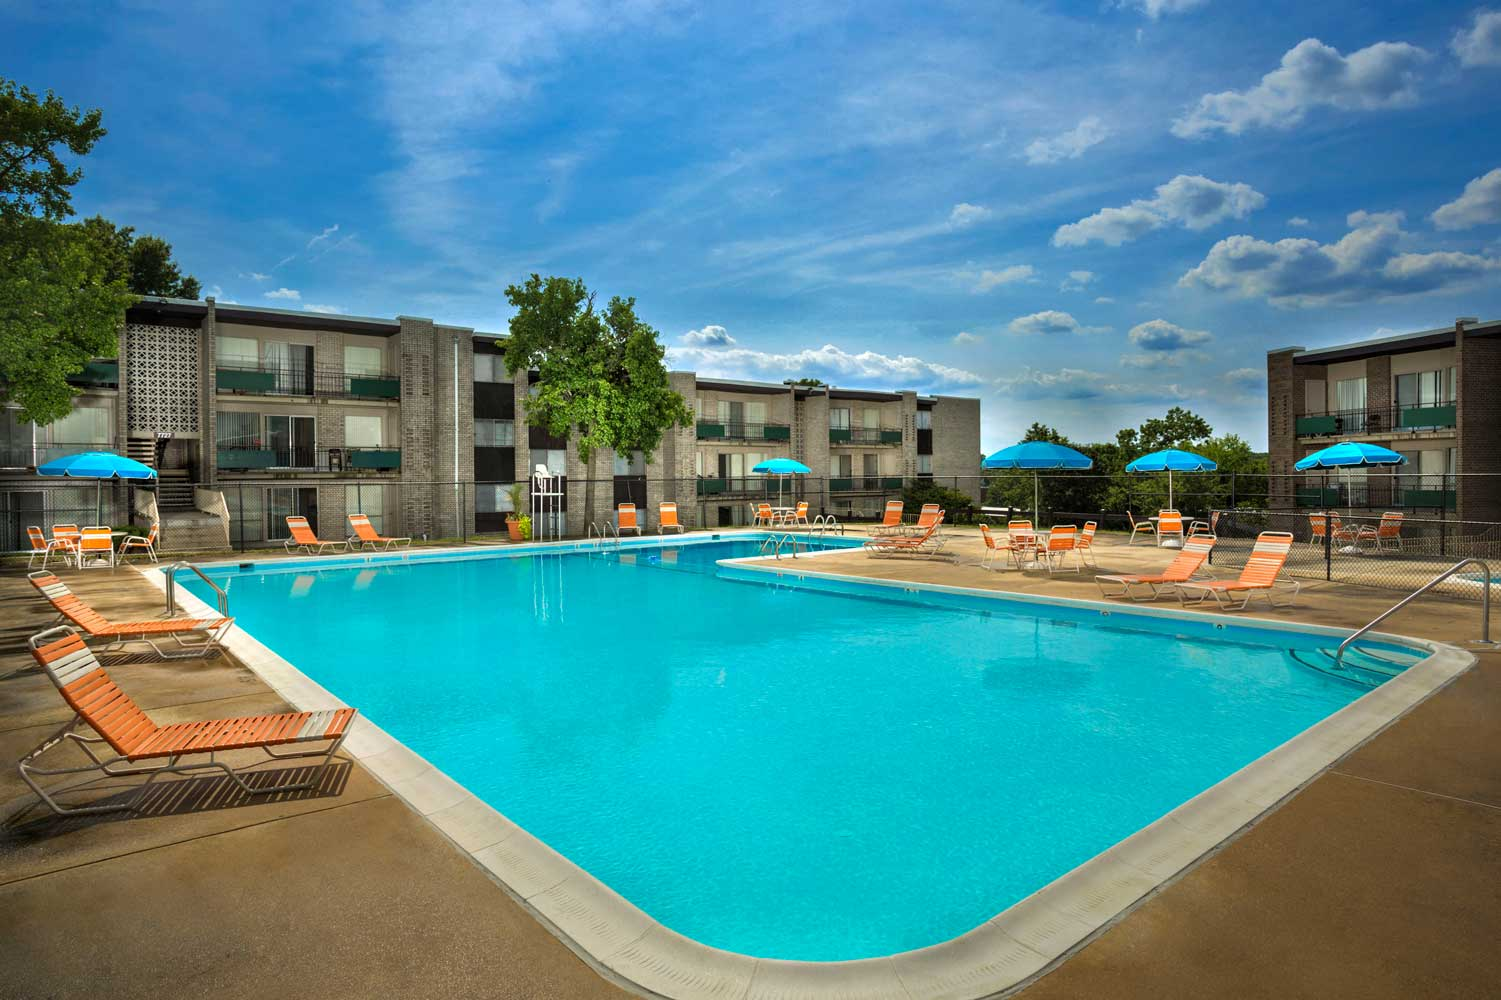 Relaxing swimming pool and wading pool at Heritage Square Apartments